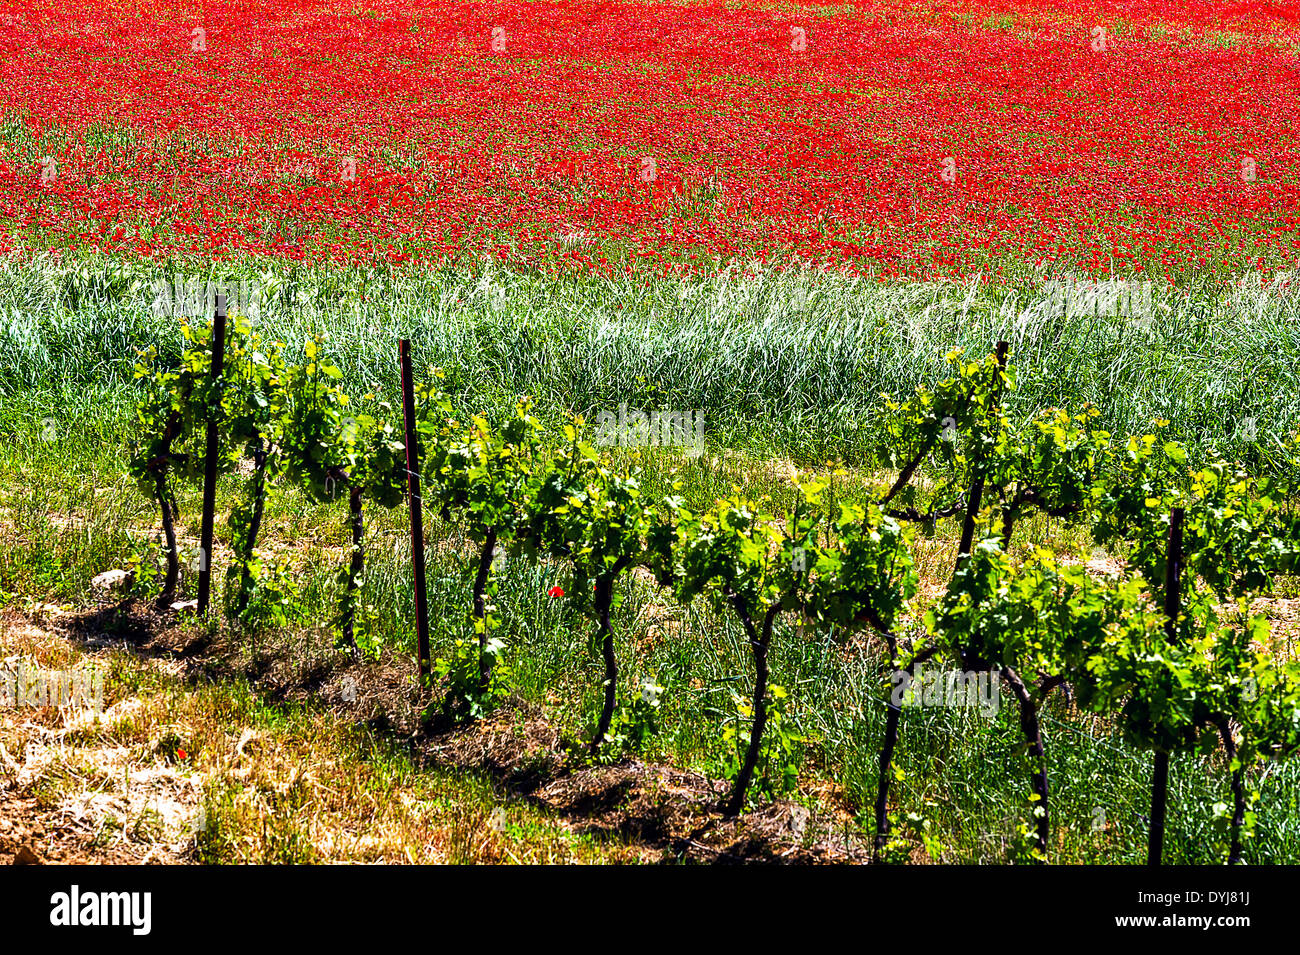 Europe, France, Var. Poppies and Vineyard in the Var hinterland. - Stock Image